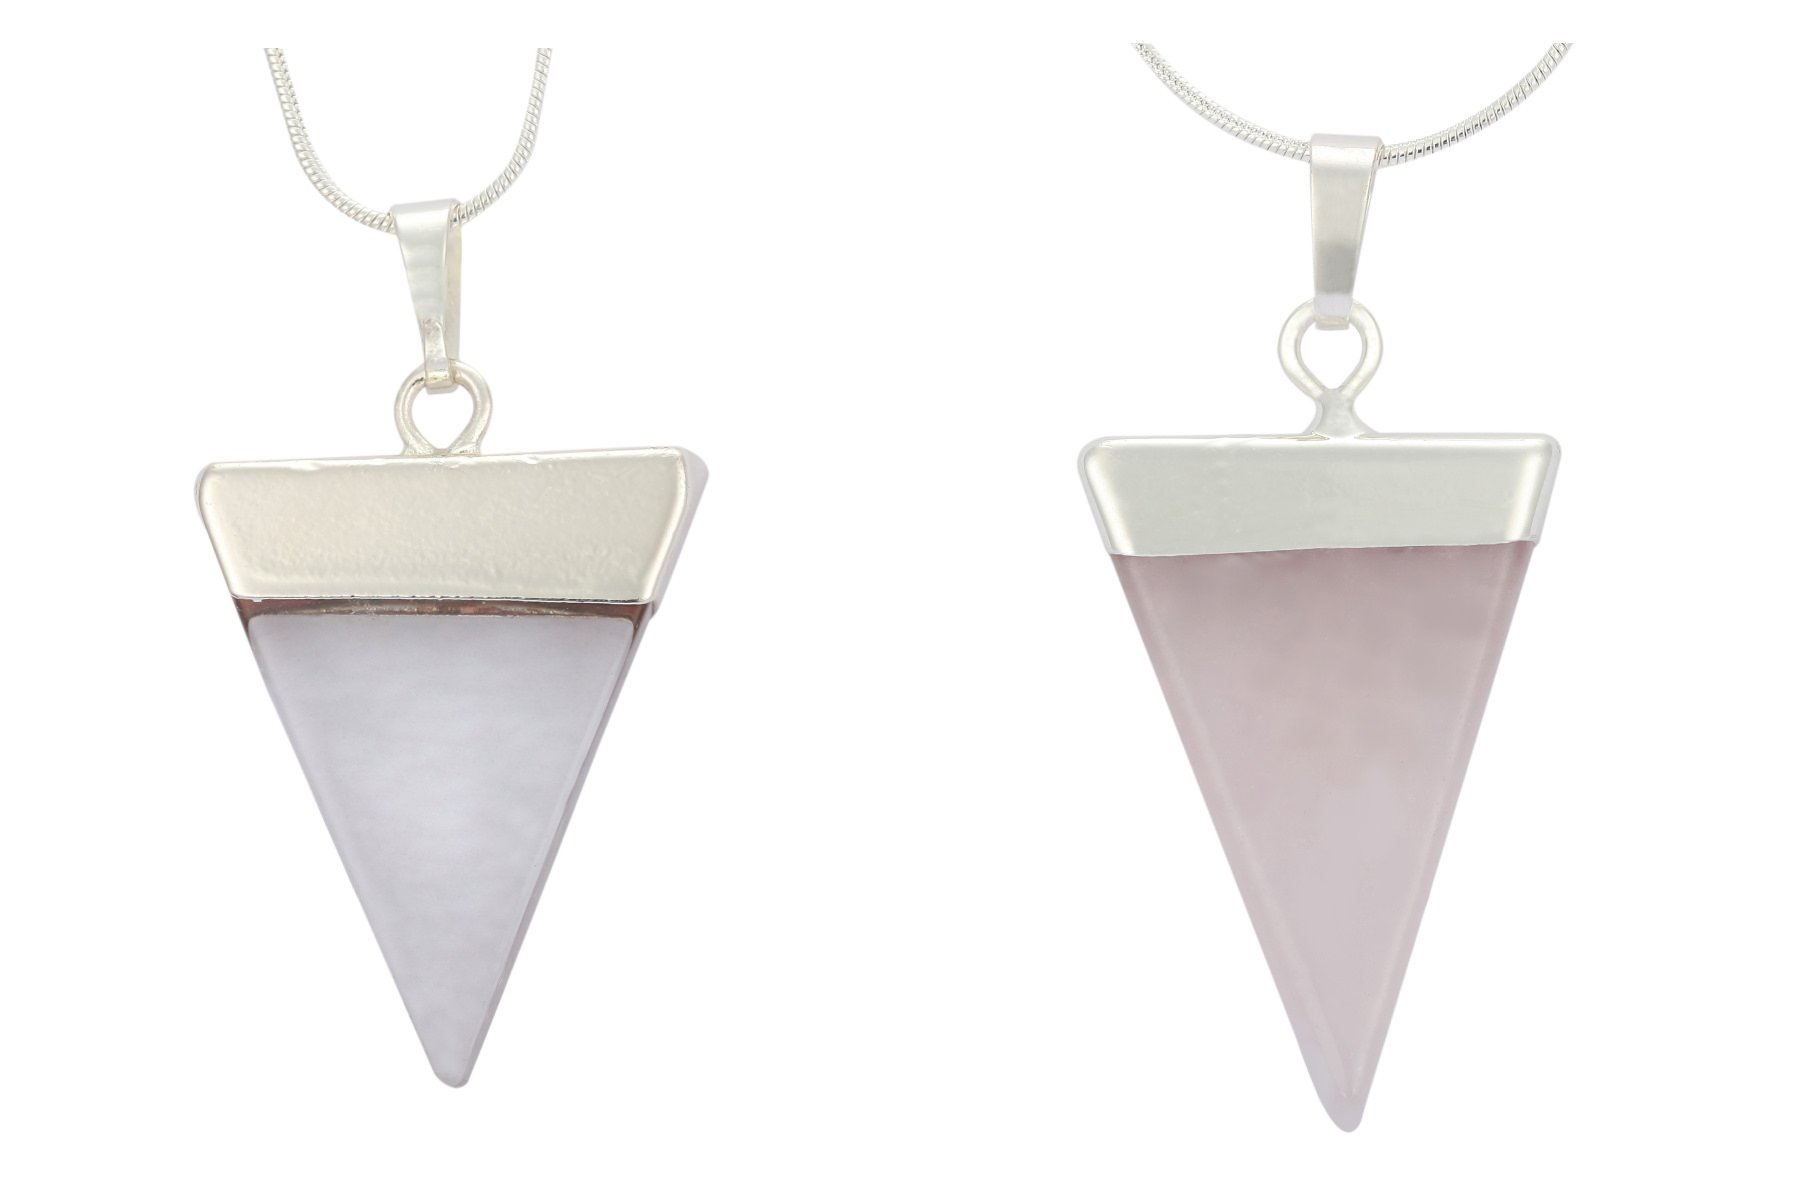 Top Quality Natural Clear Crystal & Rose Quartz Healing Point Reiki Chakra Triangle Cut 18-20 Inch Gemstone Pendant Necklace (2pcs) in Gift Bag #GGP-A-S2